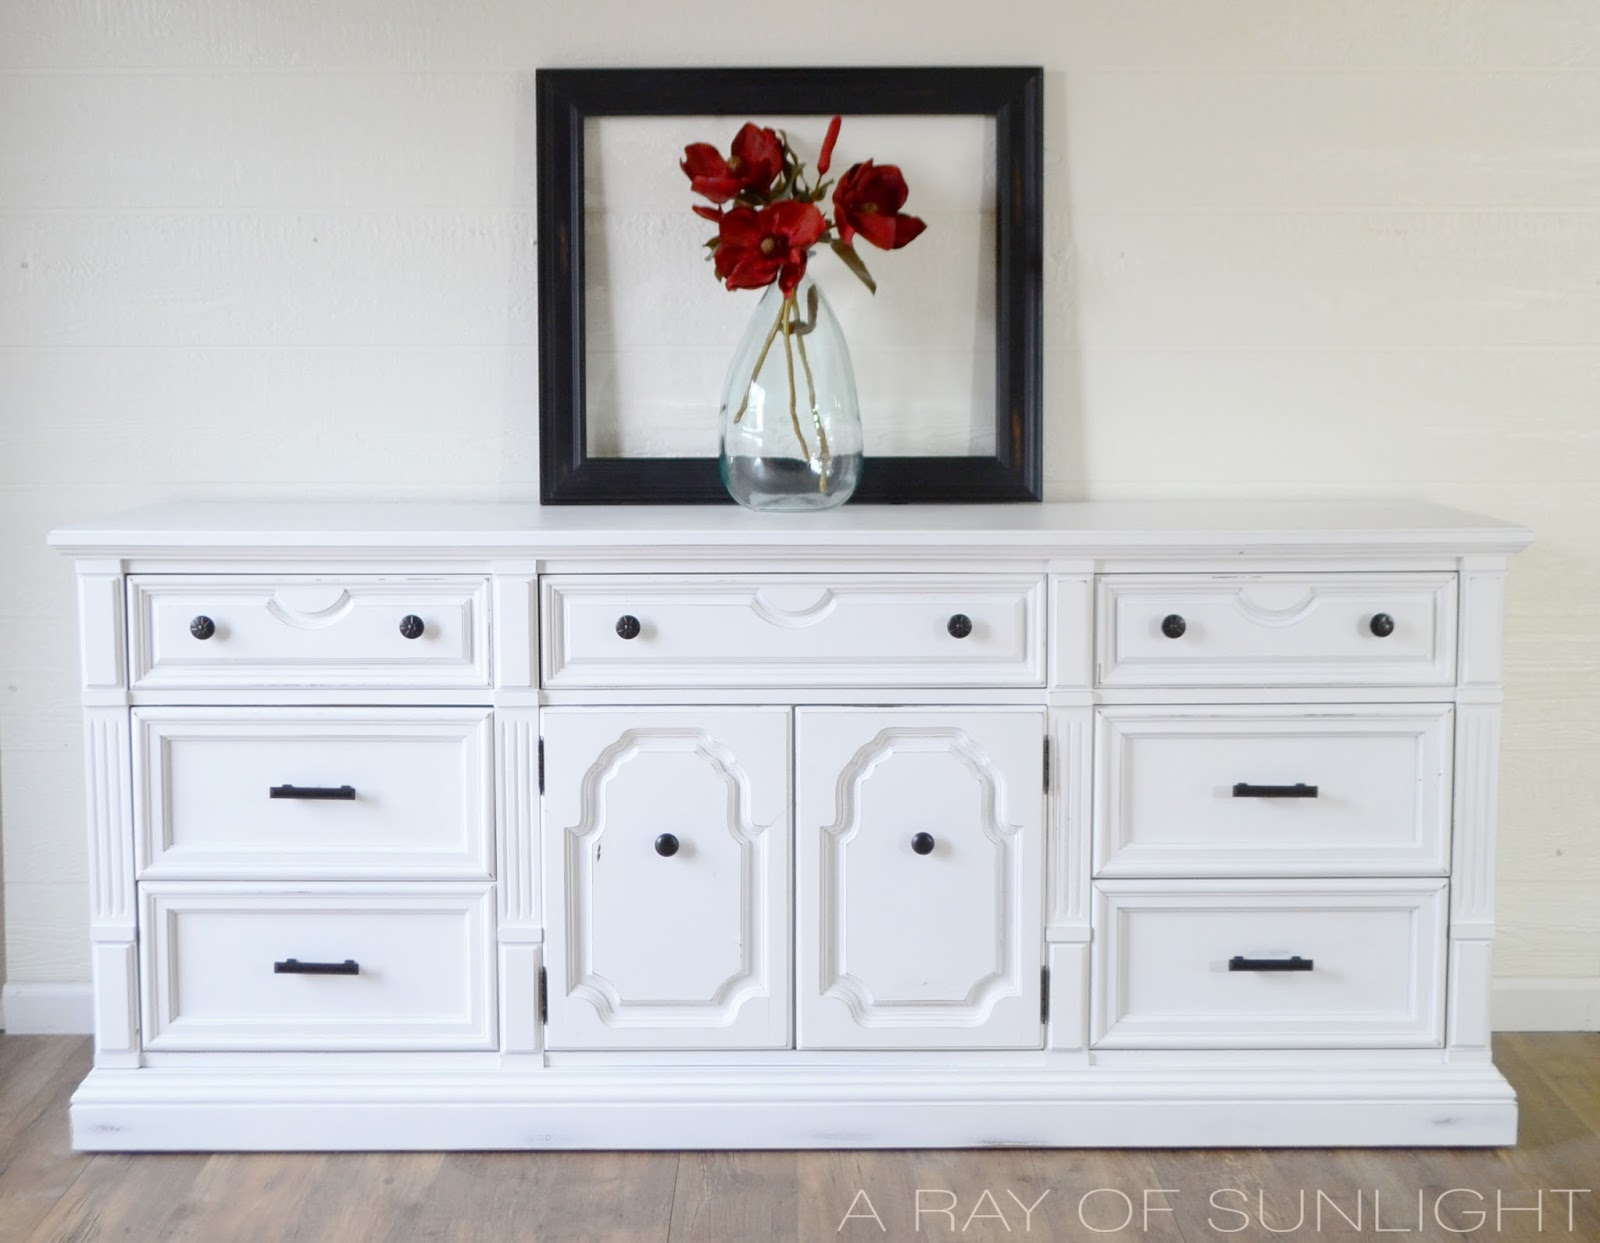 The White Thomasville Dresser Makeover - A Ray of Sunlight